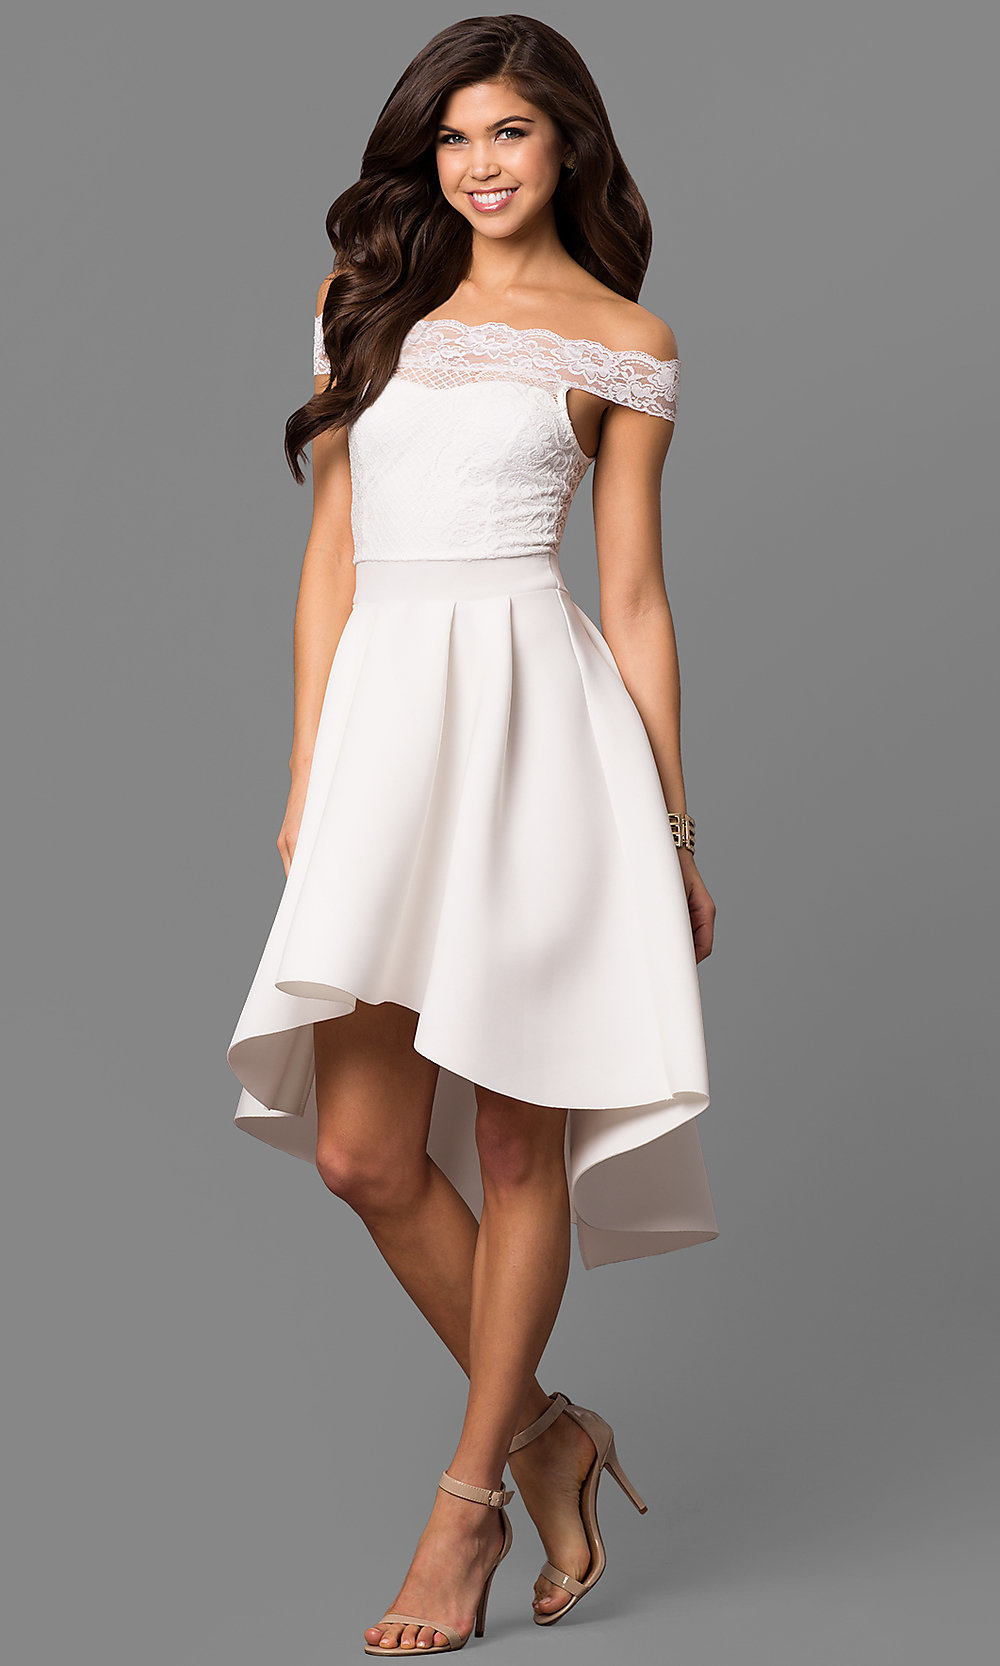 White dress cocktail party - Hover To Zoom